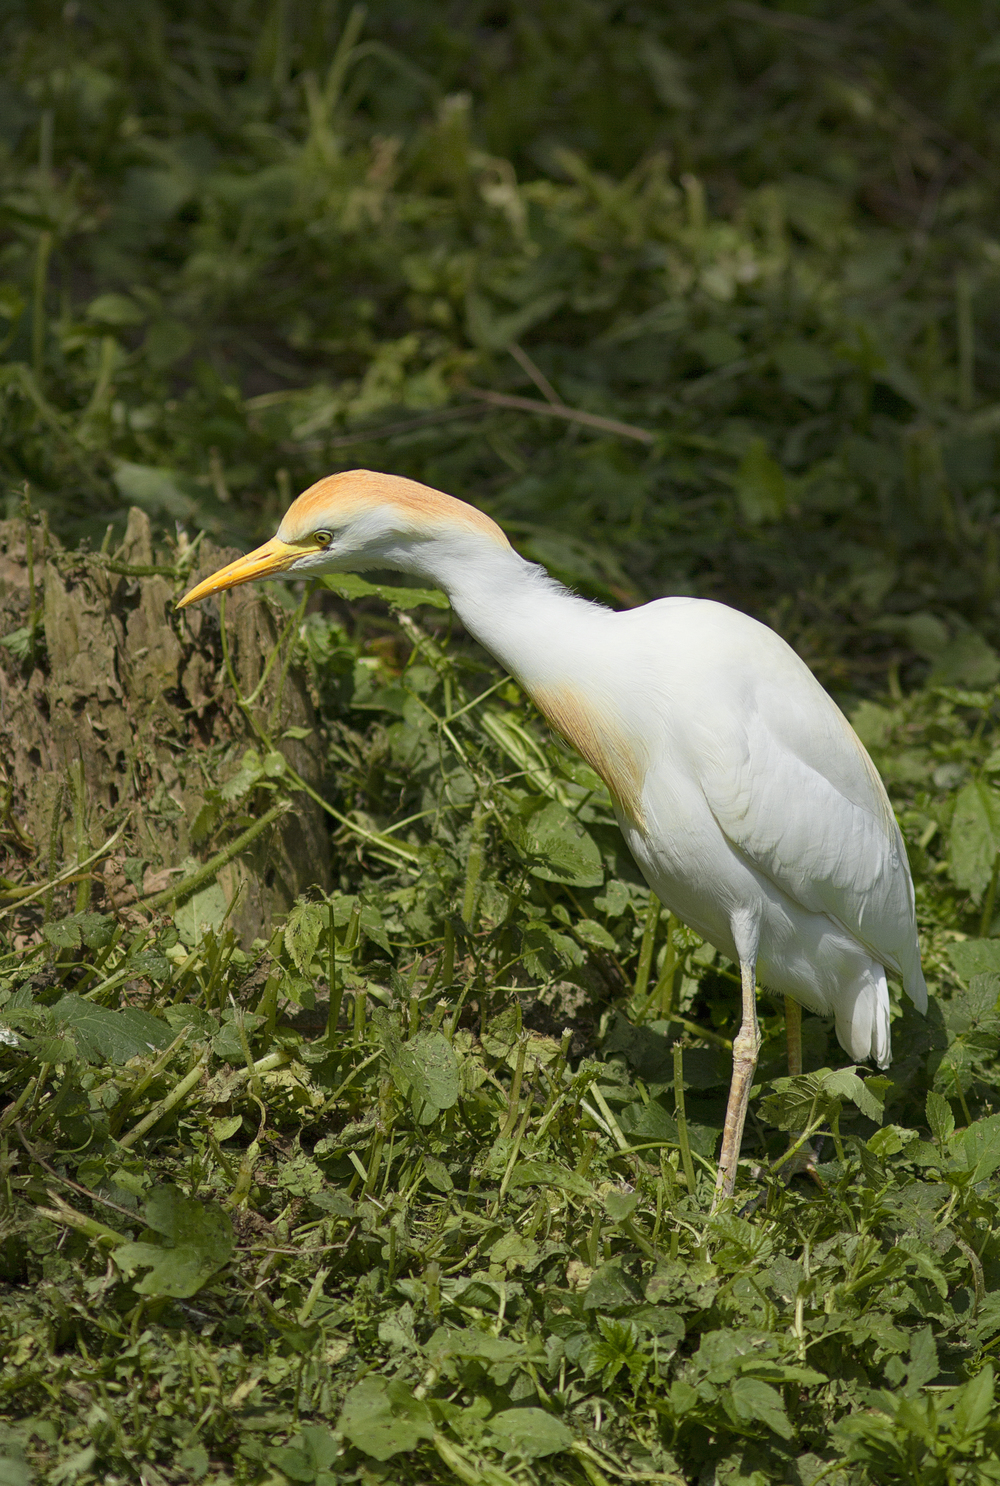 The Cattle Egret Read about The cattle egret (Bubulcus ibis) Comments